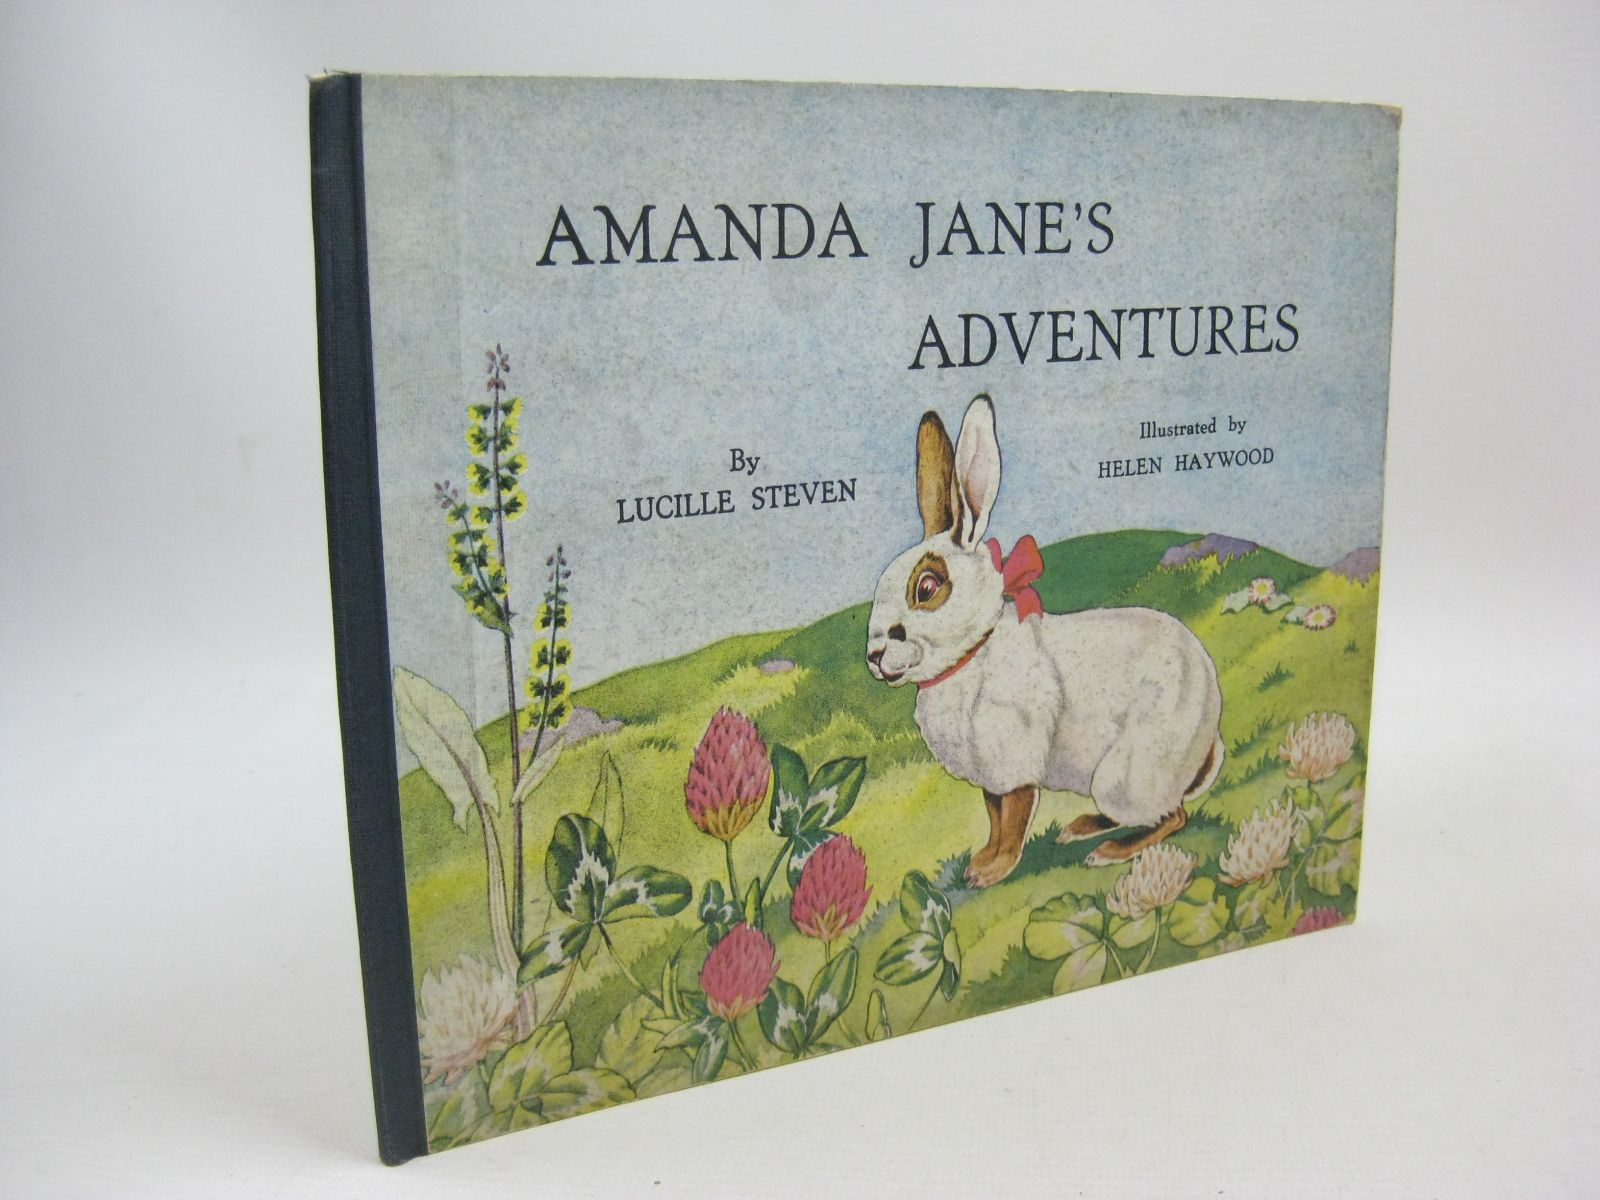 Photo of AMANDA JANE'S ADVENTURES written by Steven, Lucille illustrated by Haywood, Helen published by Art And Educational Publishers Ltd. (STOCK CODE: 1315434)  for sale by Stella & Rose's Books